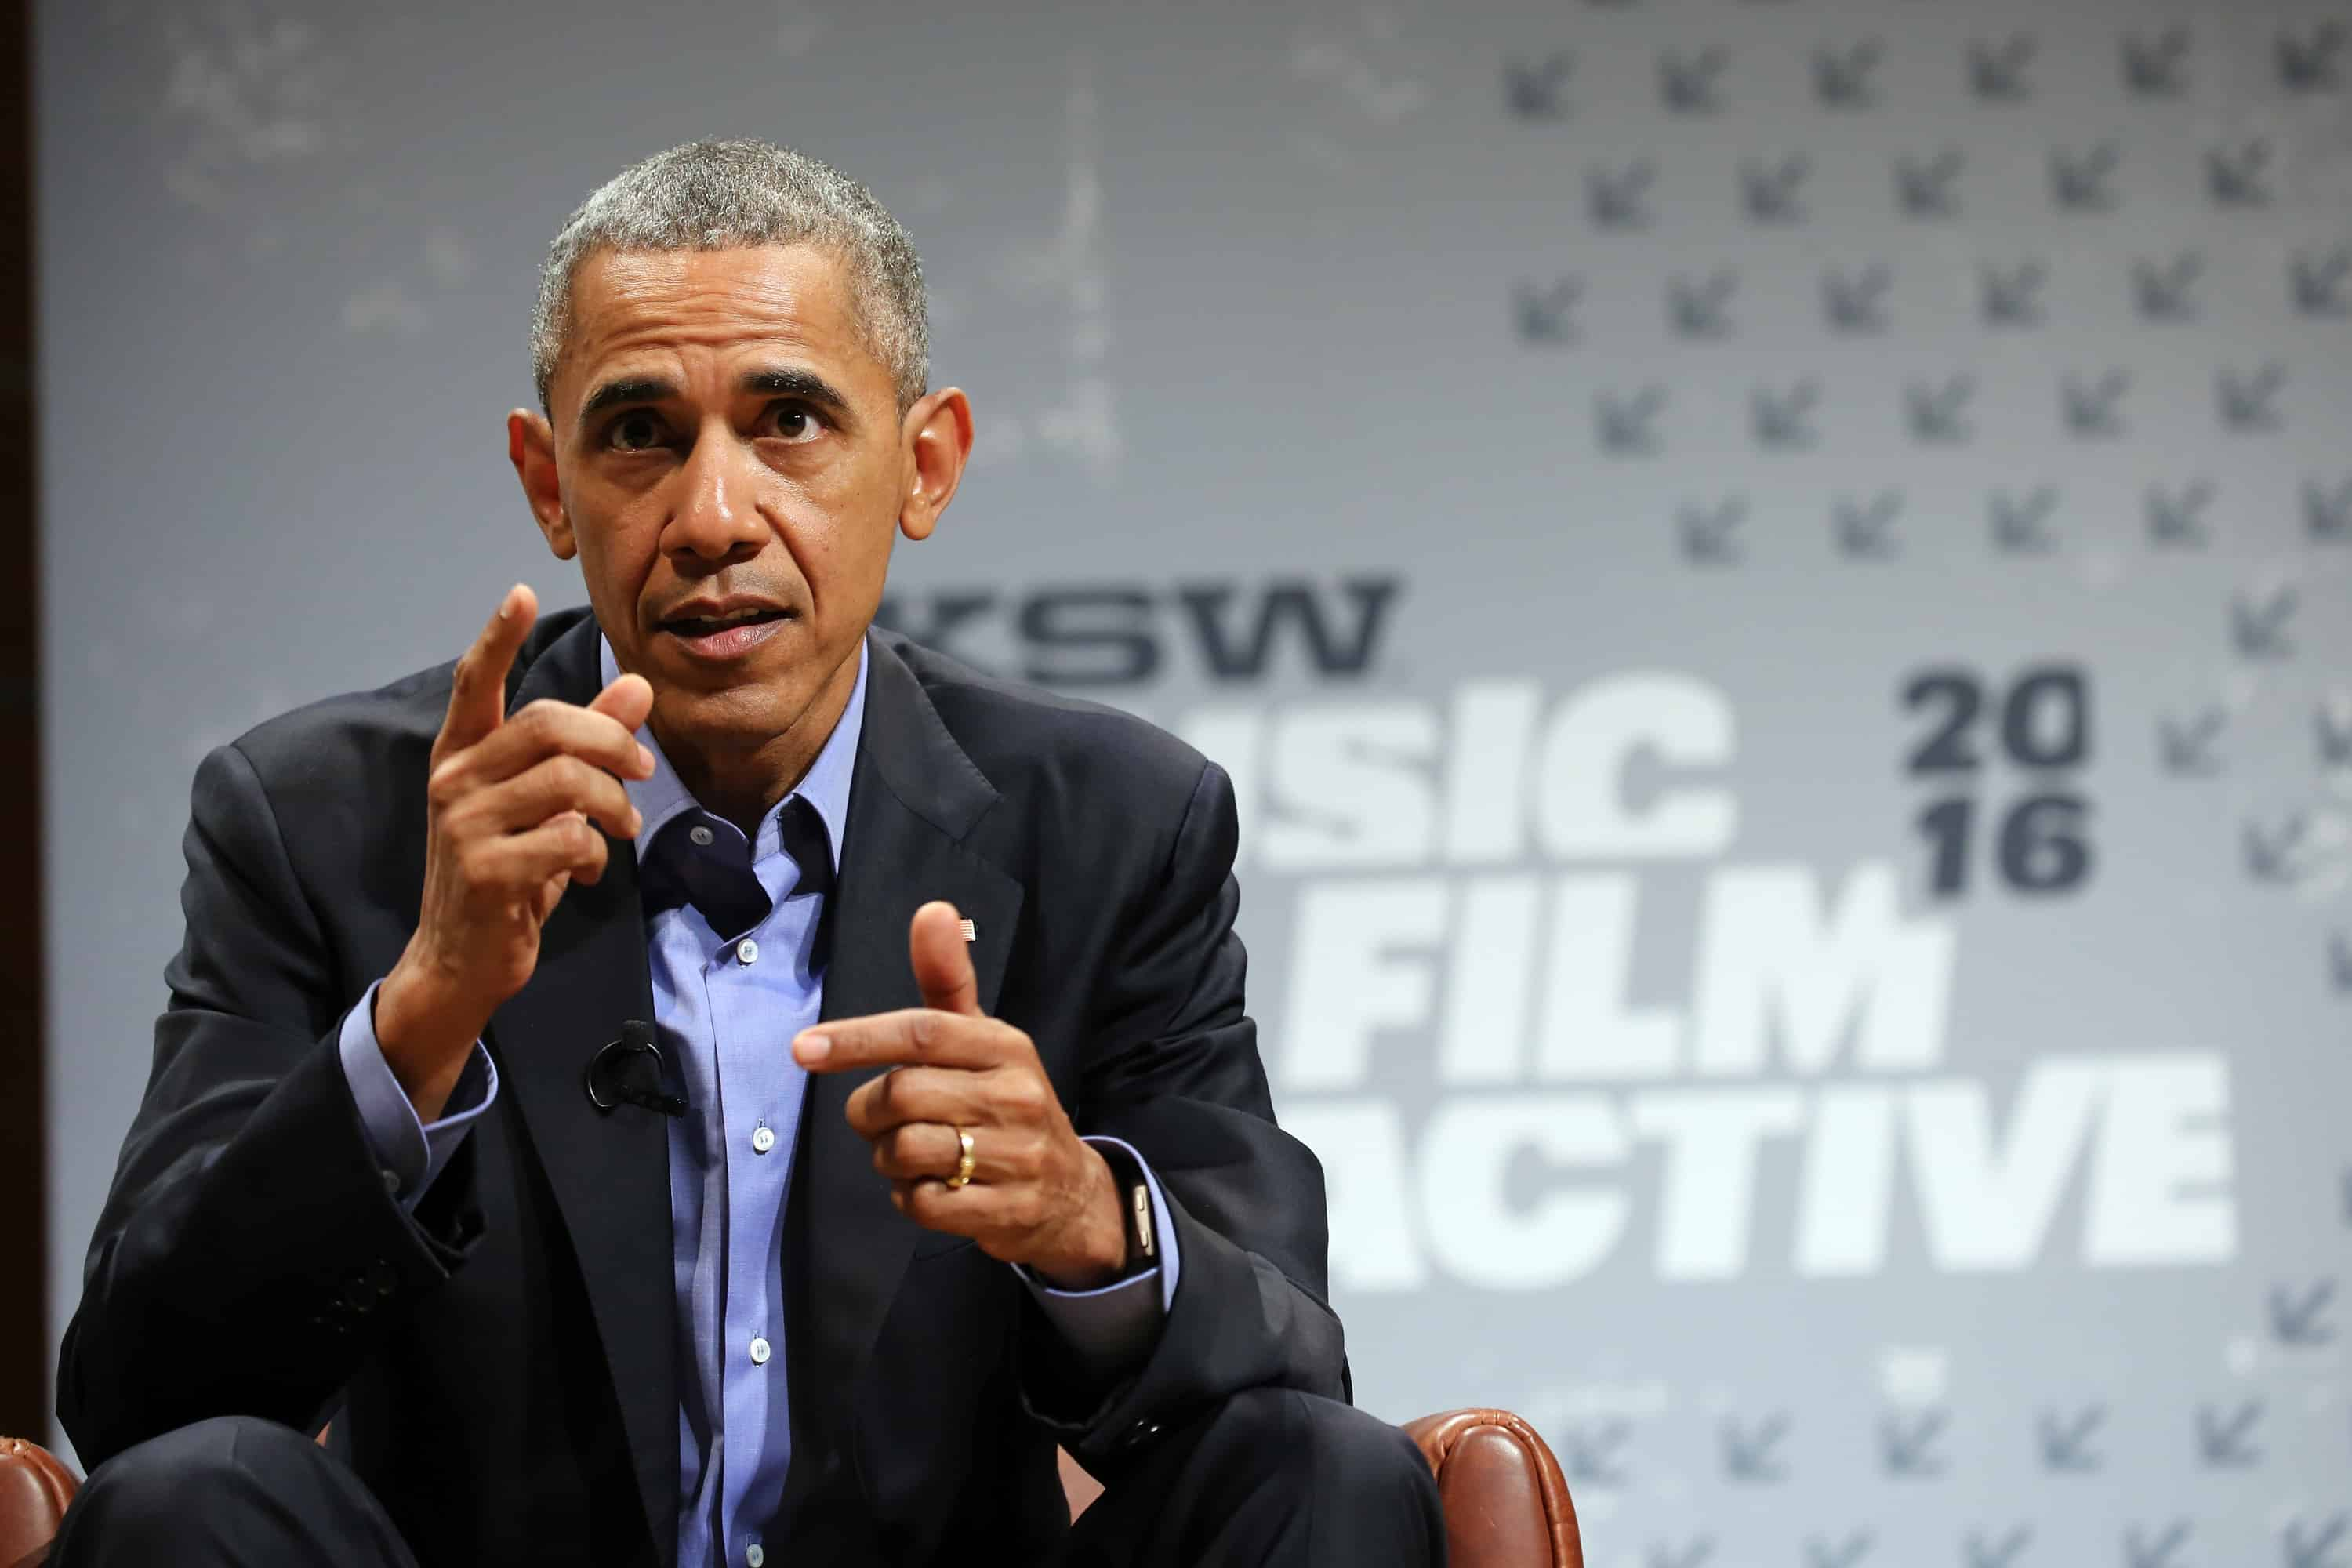 U.S. President Barack Obama speaks at the opening Keynote during the 2016 SXSW Music, Film + Interactive Festival